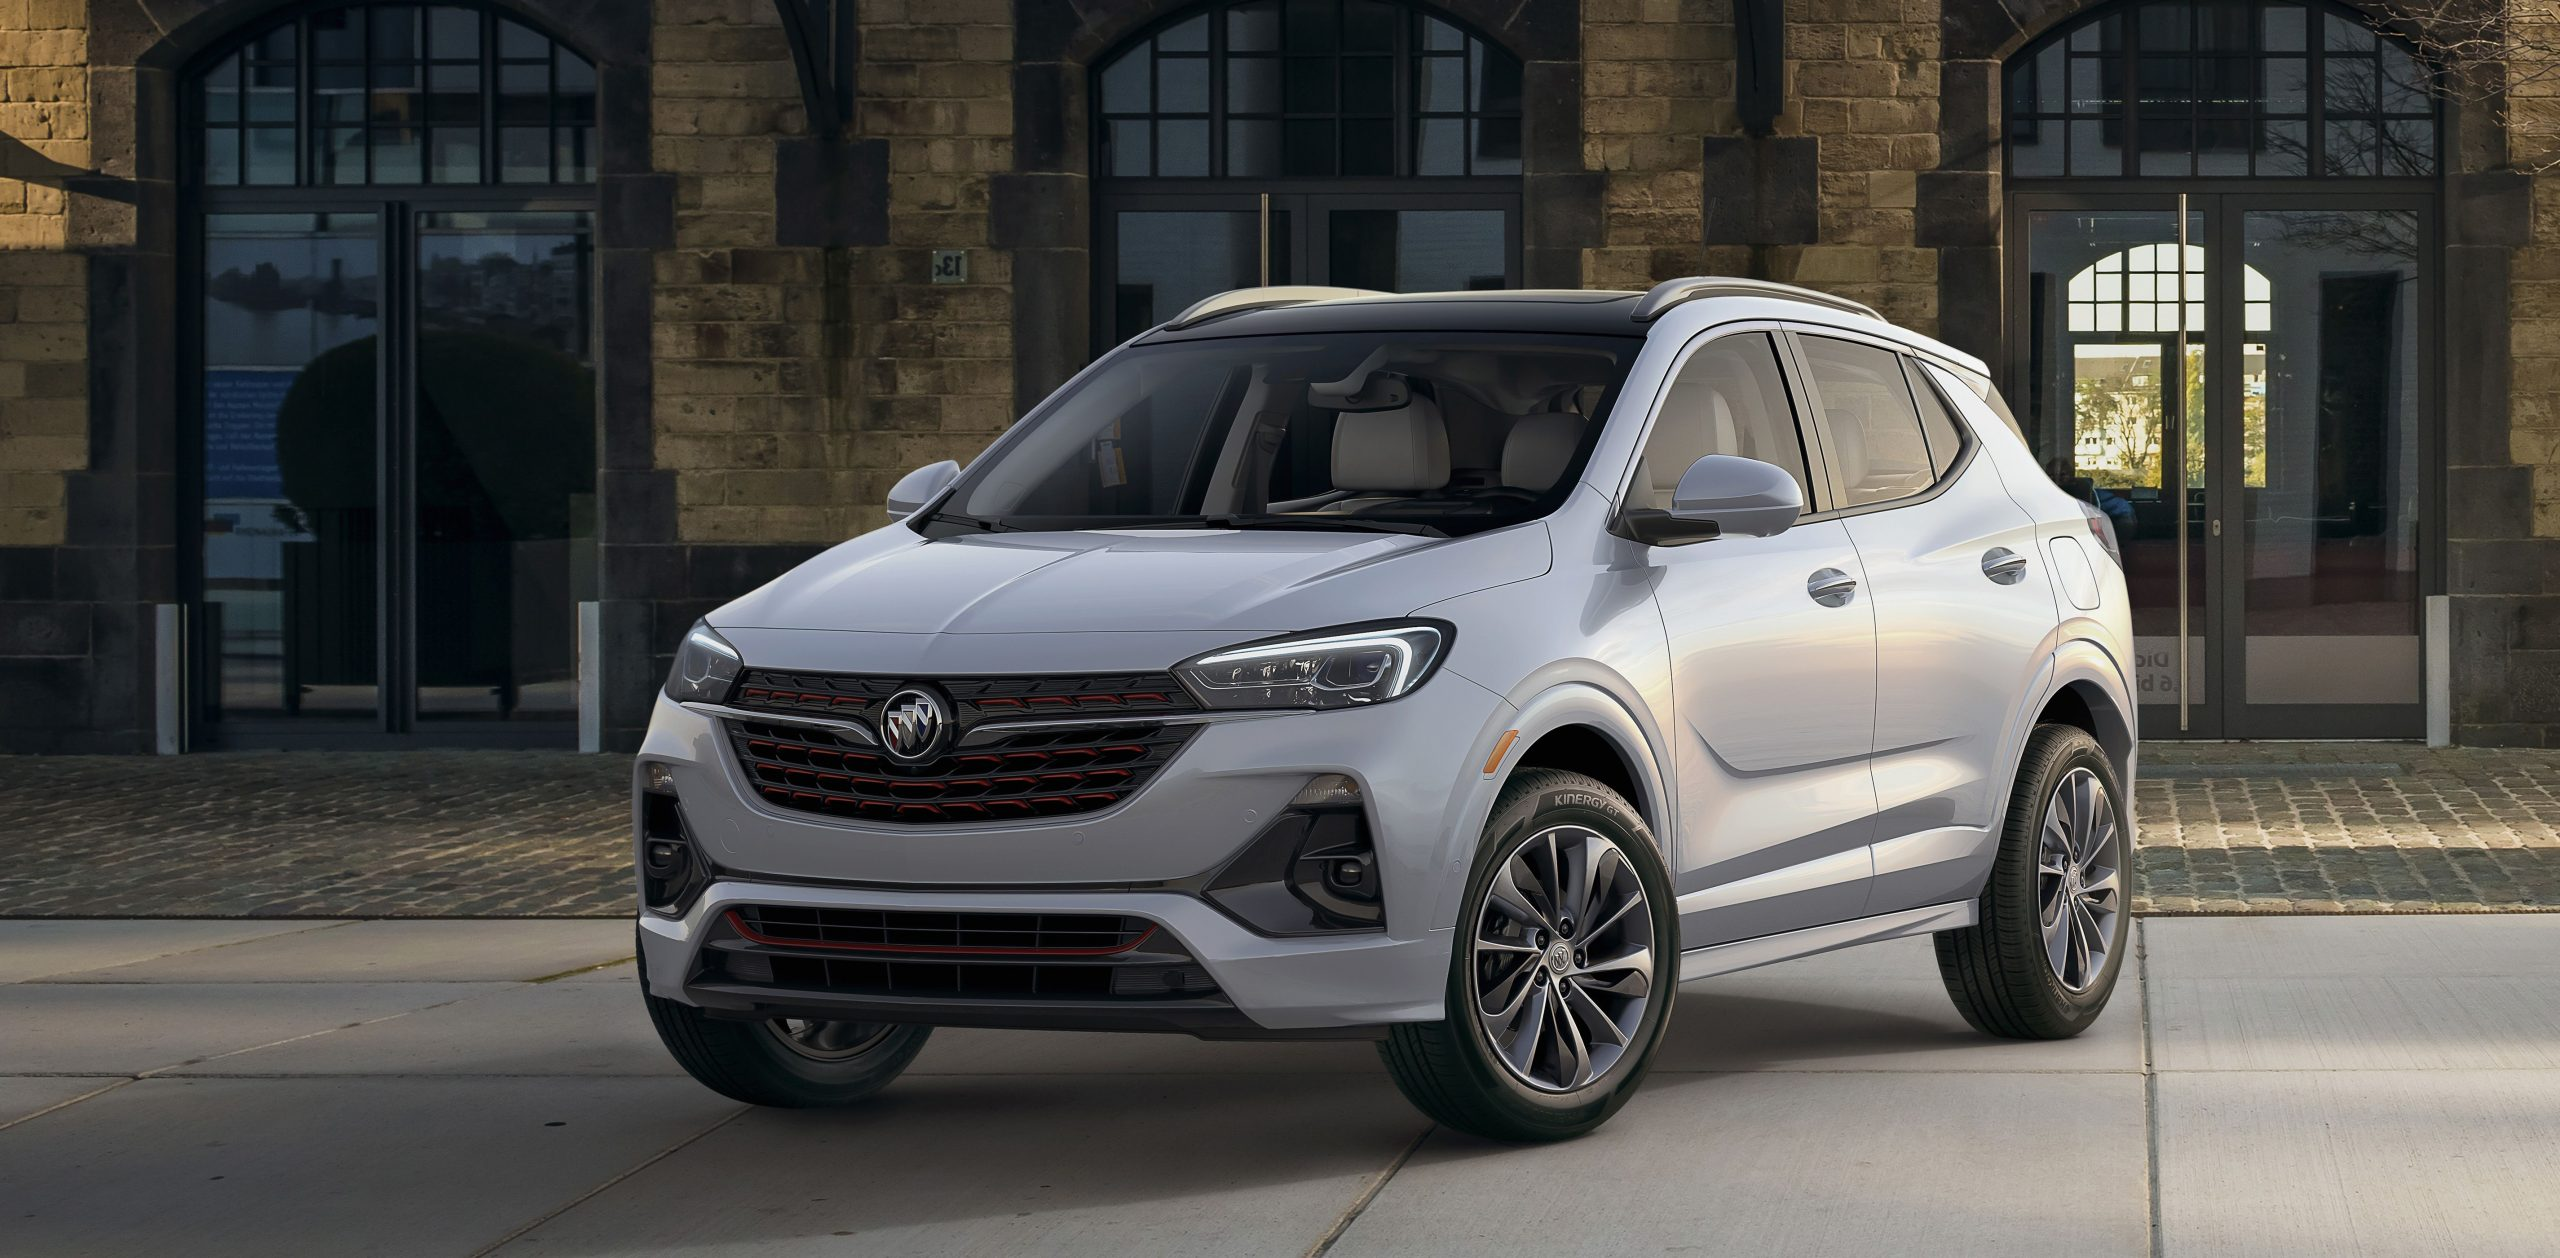 2020 Buick Encore Gx: What We Know So Far 2021 Buick Encore Cargo Space, Cost, Curb Weight